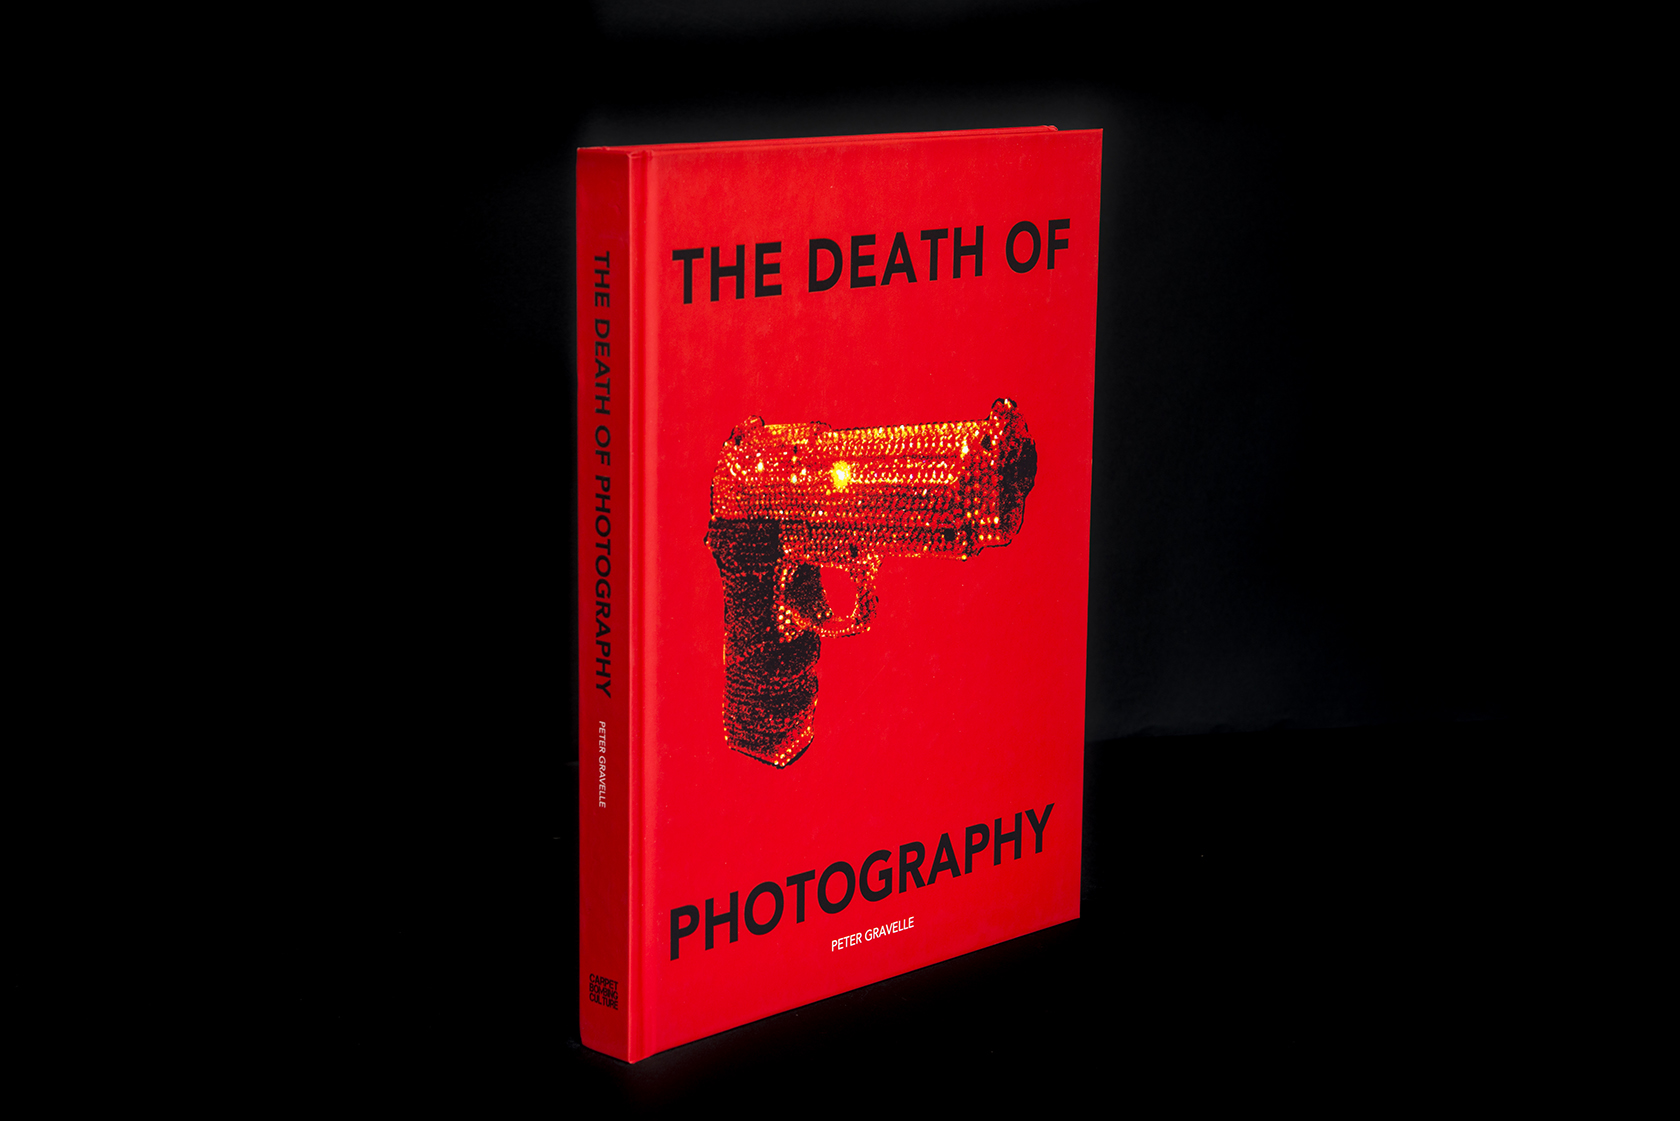 The Death of Photography